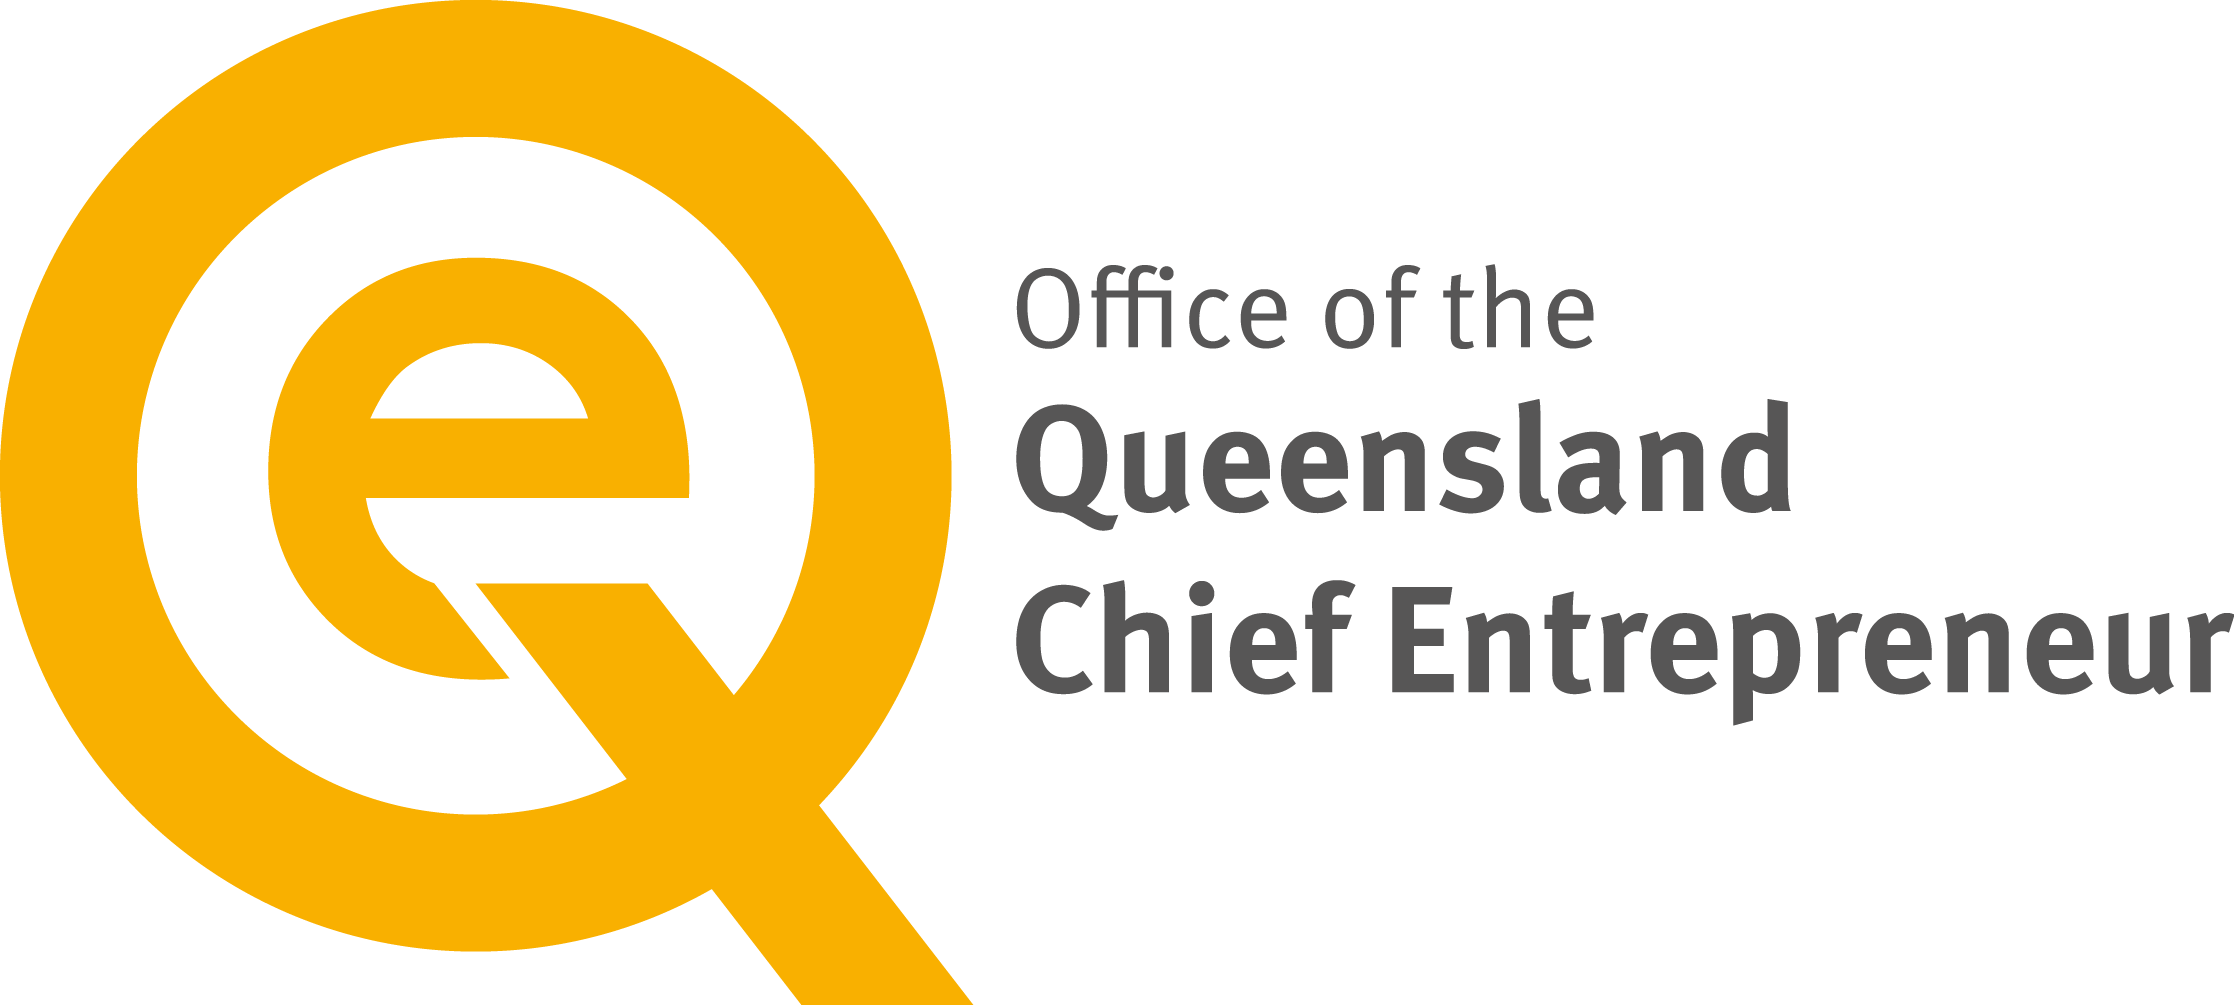 OQCE-logo-text.png